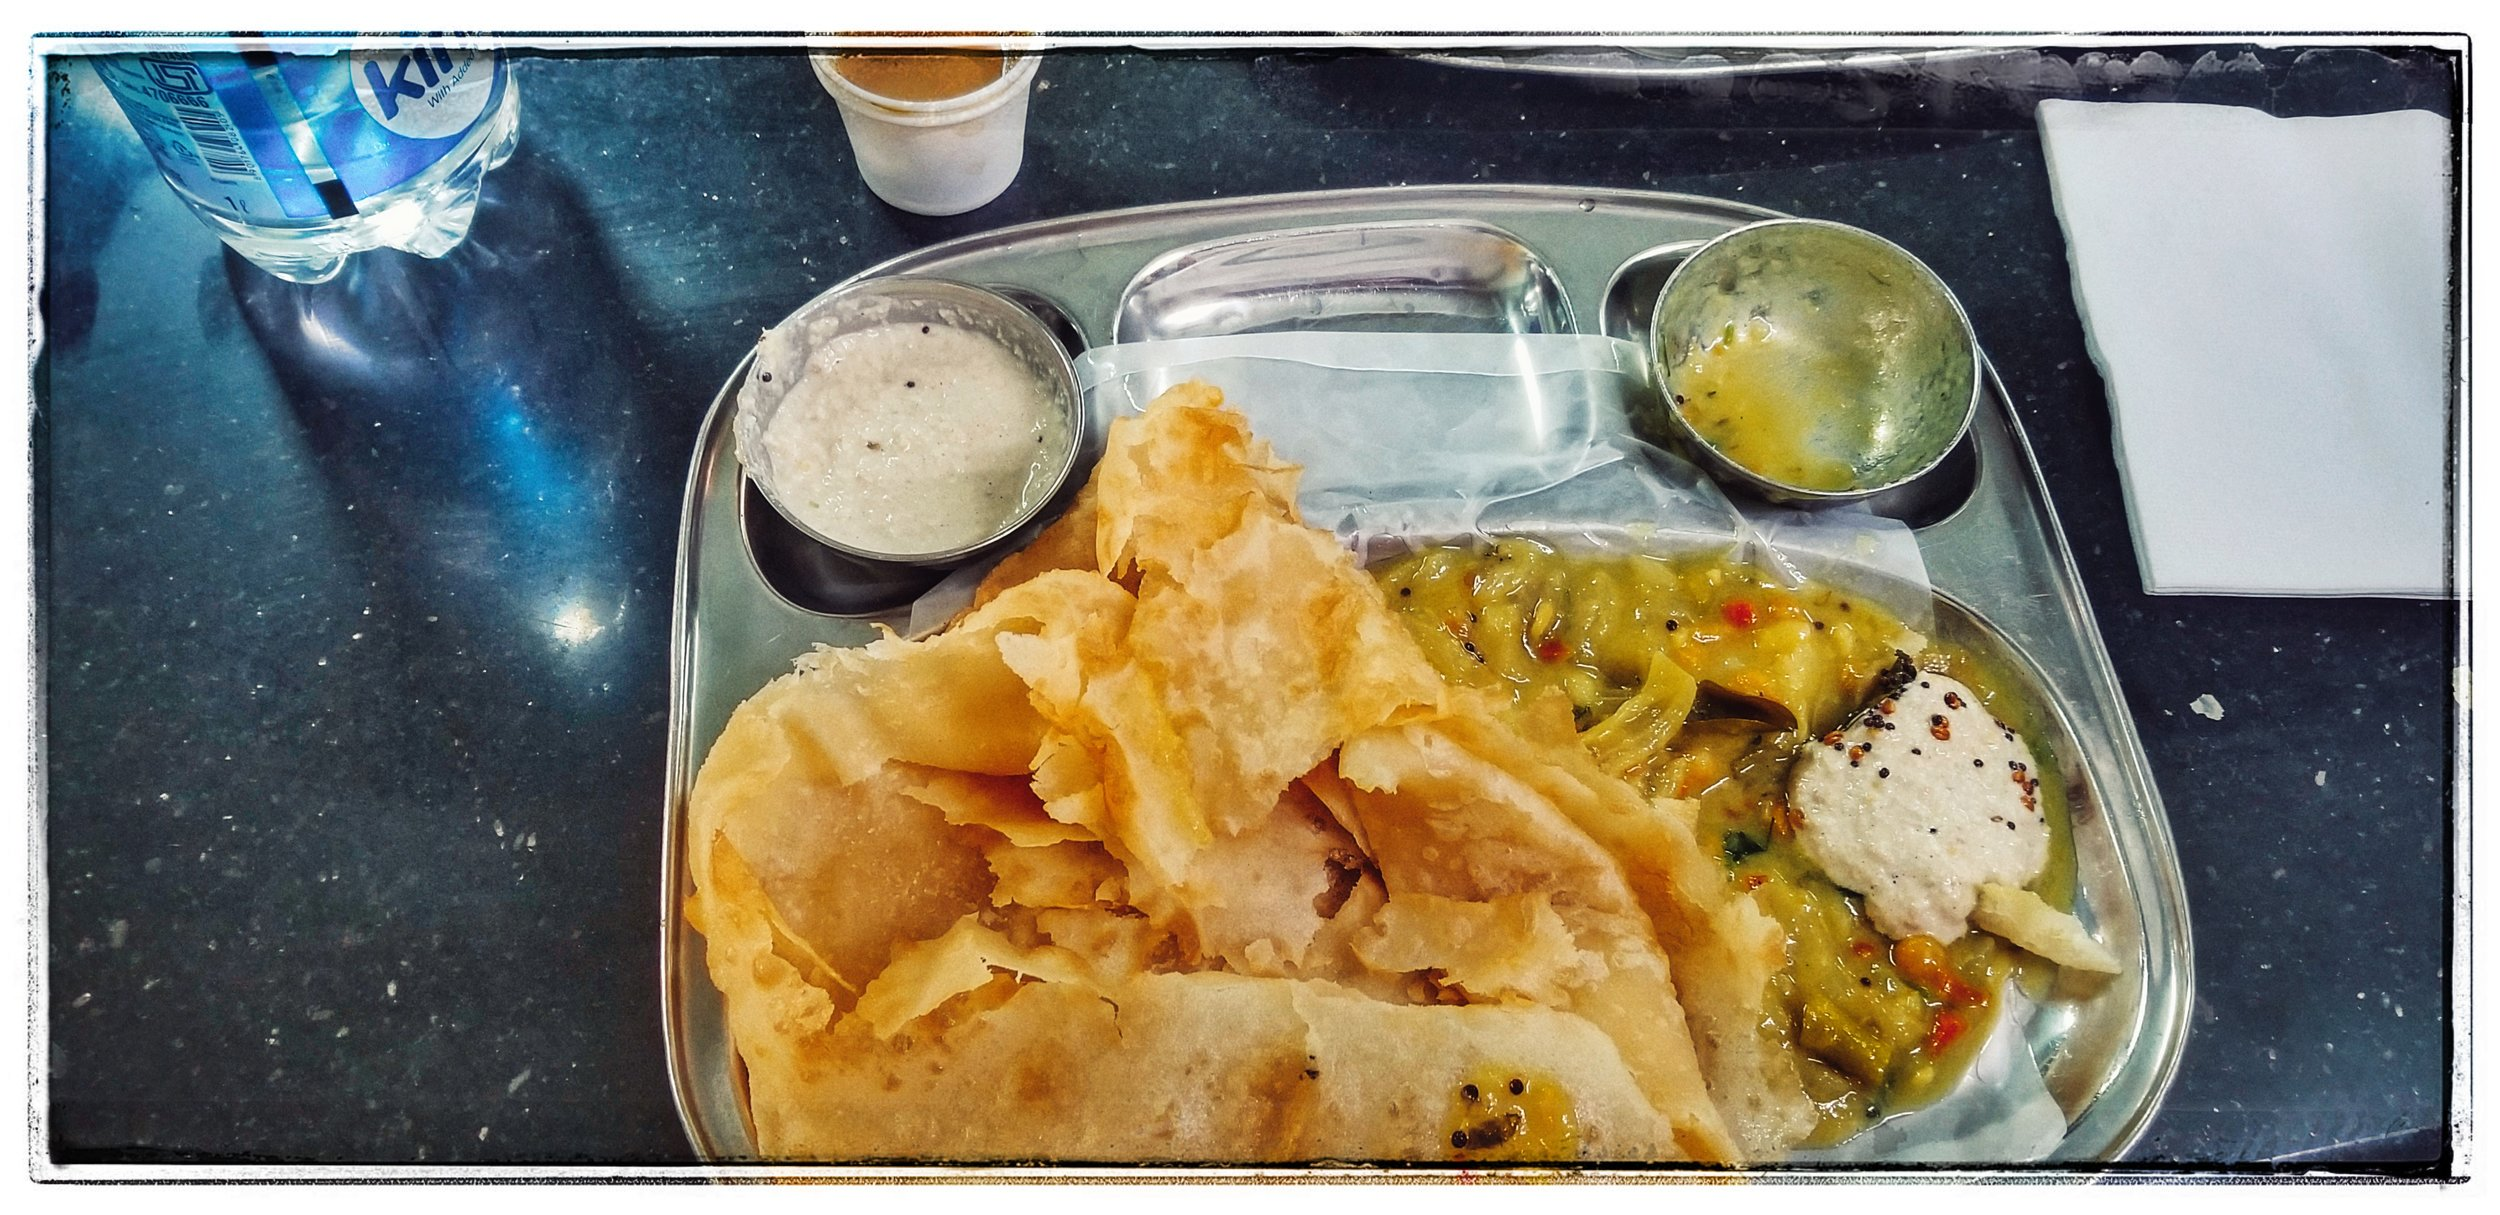 Breakfast in India I had poori, a puff pastry with curry and yogurt. With 2 coffees it cost 75 cents. . A nice dinner out? $6-$8